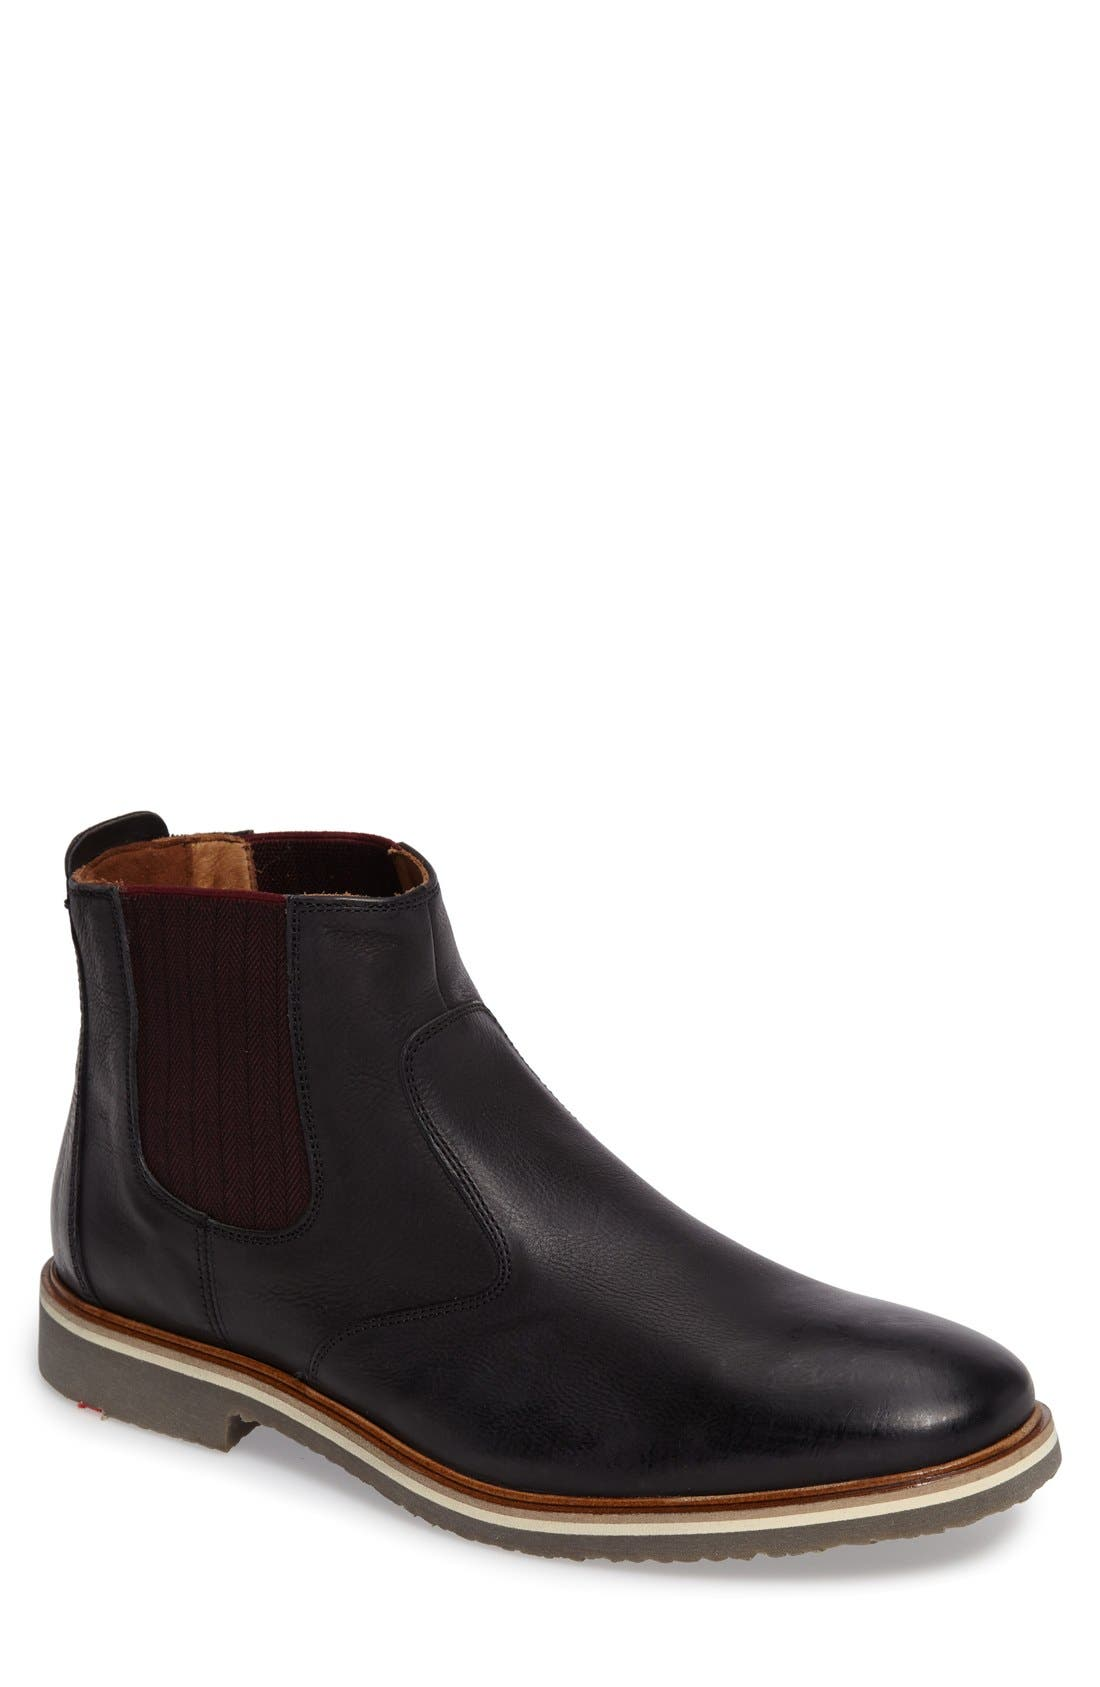 Alternate Image 1 Selected - Lloyd Slava Mid Chelsea Boot (Men)